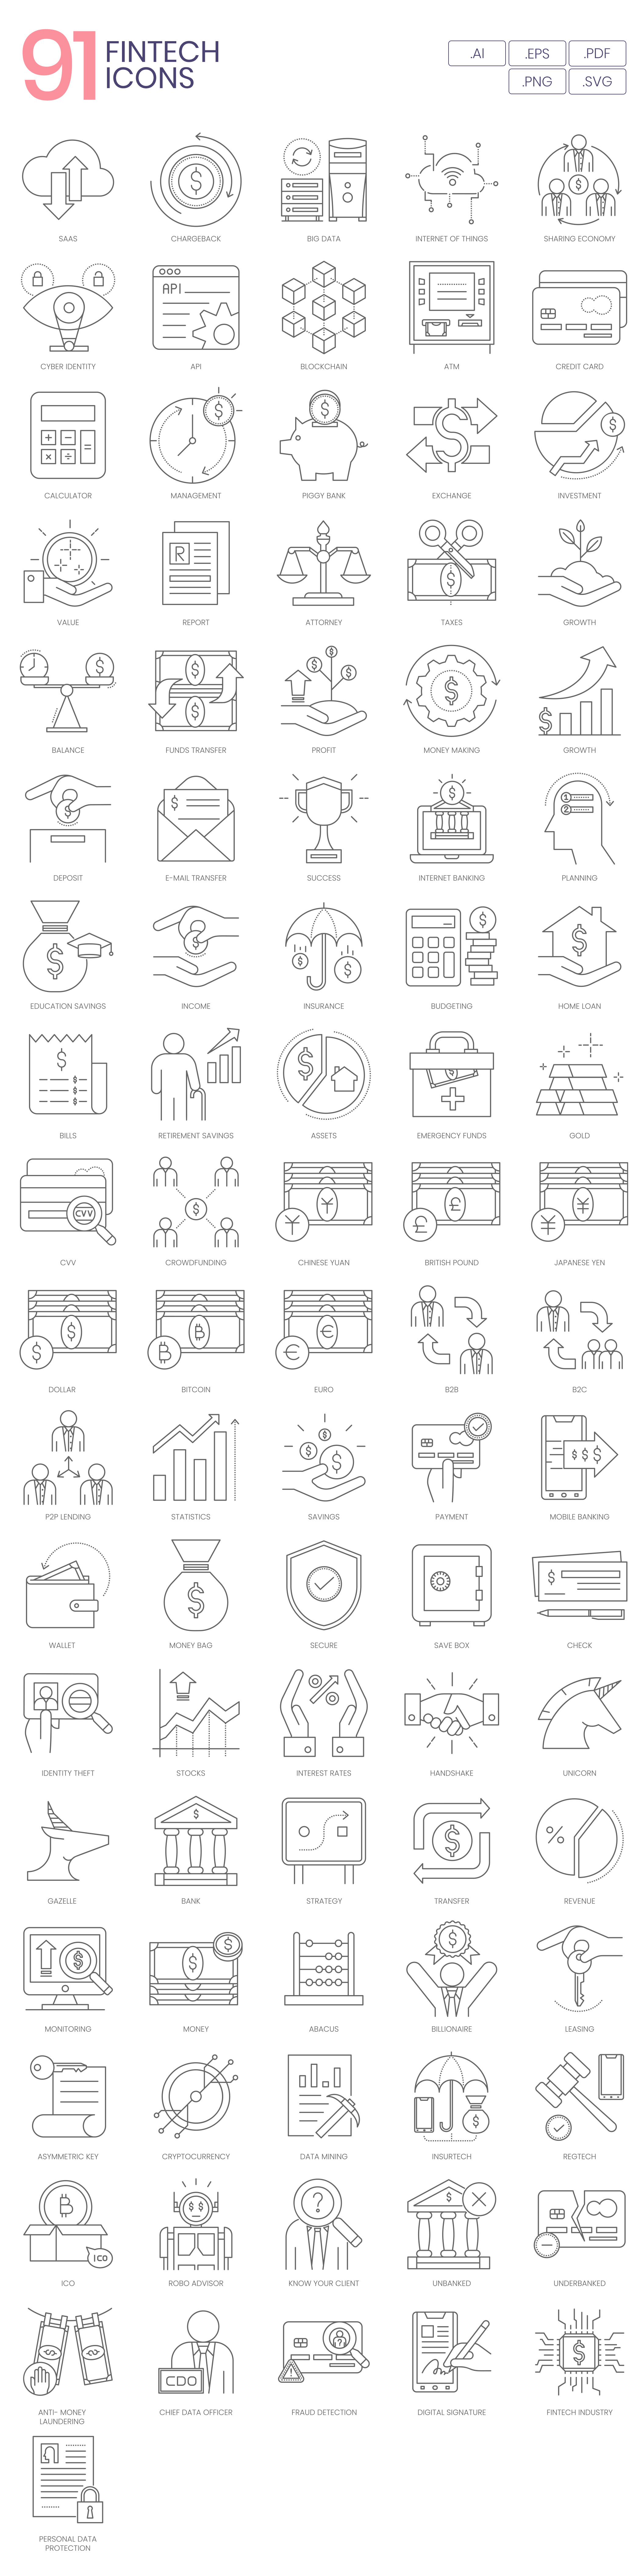 Preview Image for Fintech Icon Set